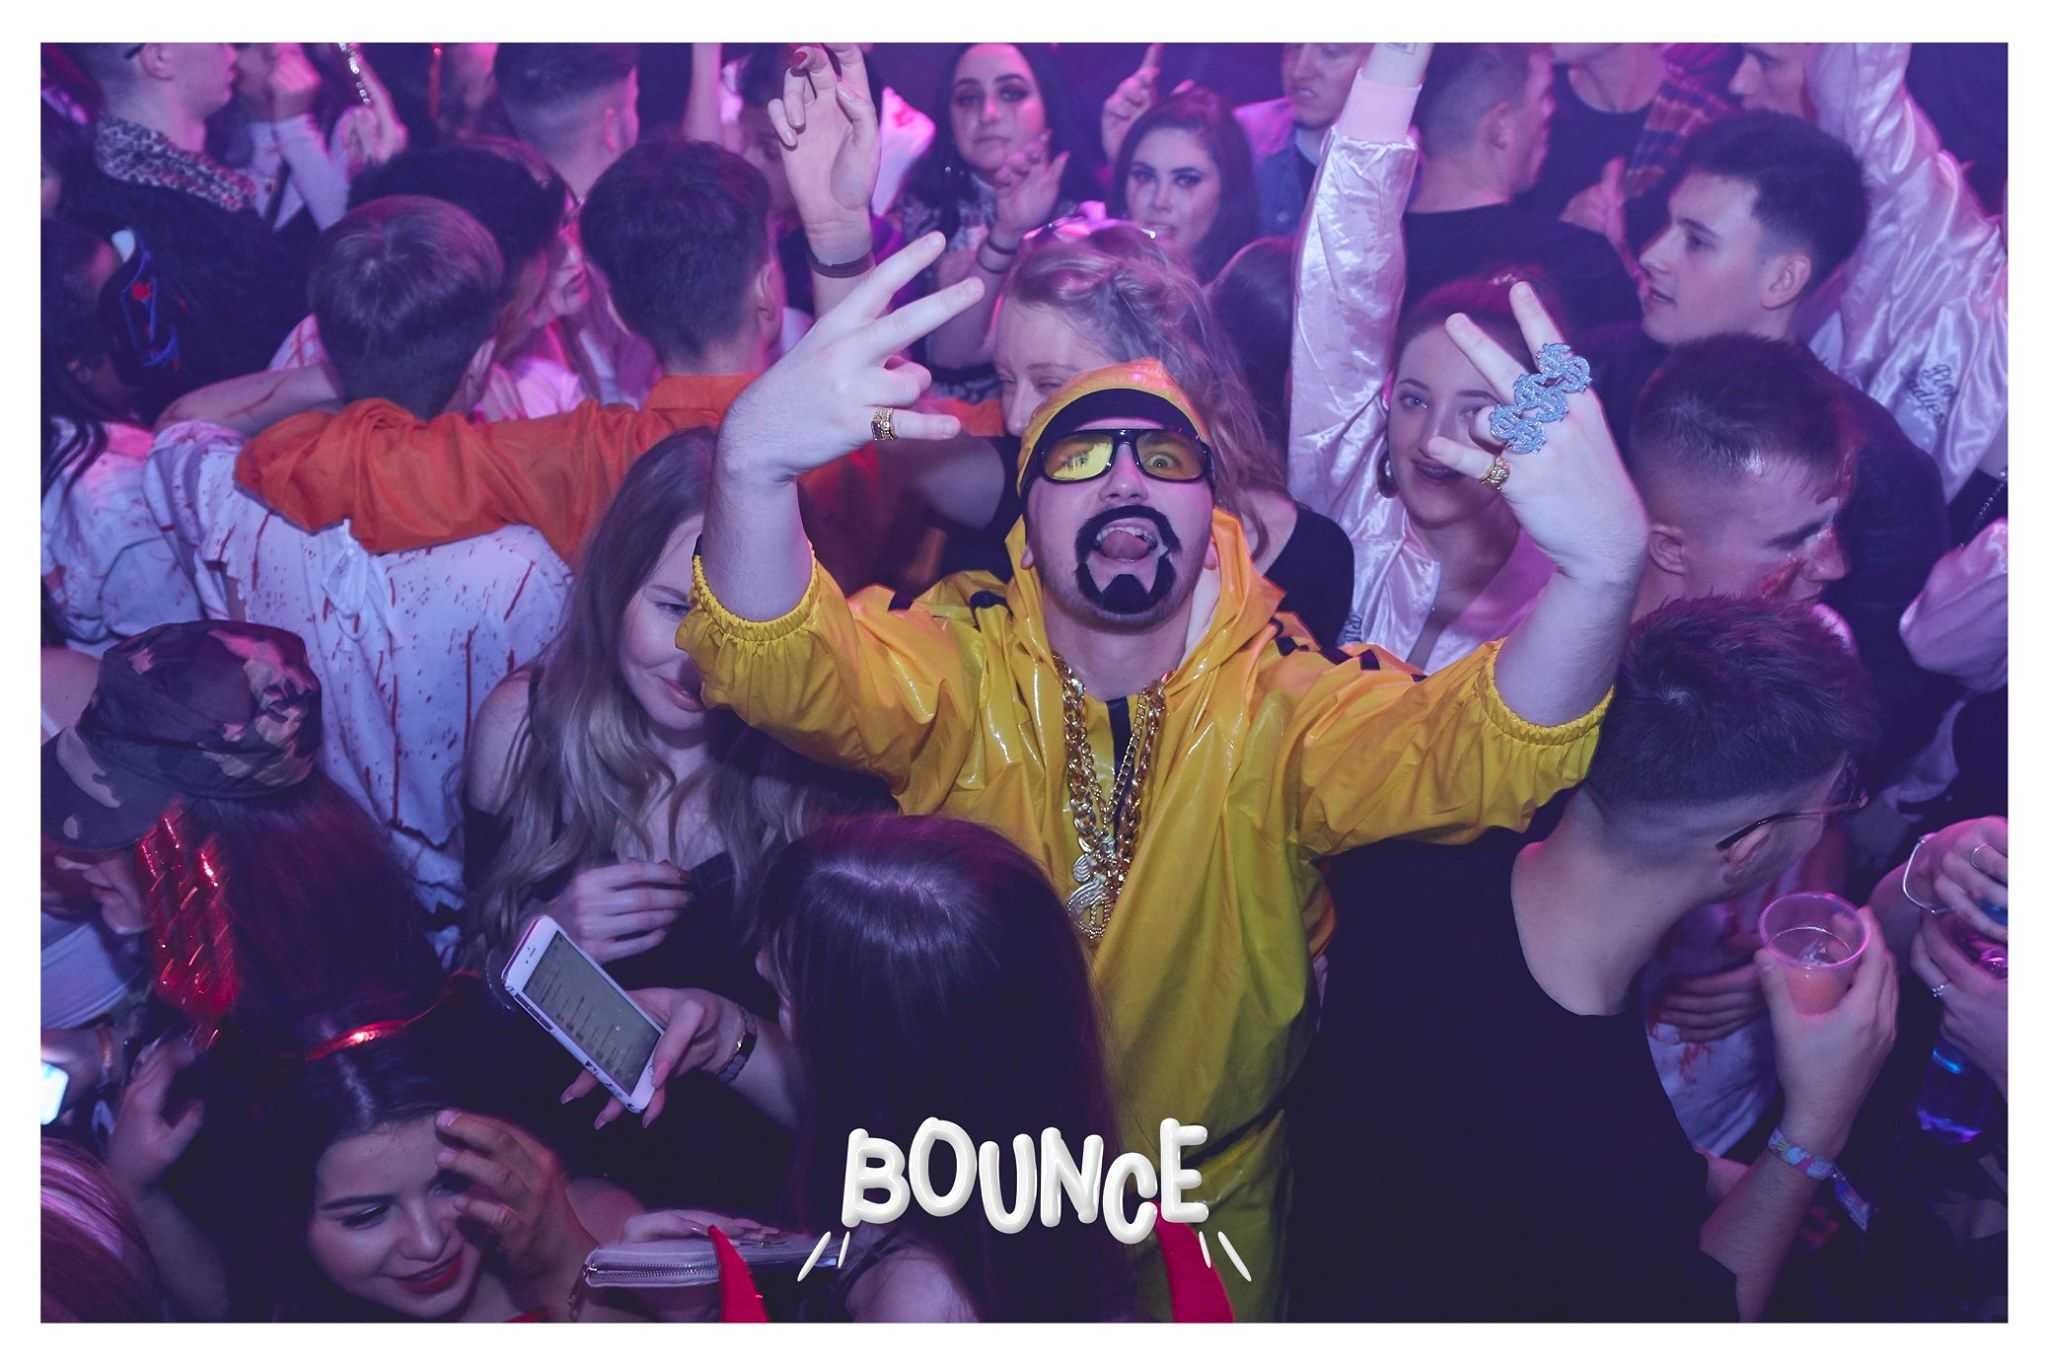 Image may contain: Leisure Activities, Crowd, Sunglasses, Accessories, Accessory, Night Club, Club, Party, Human, Person